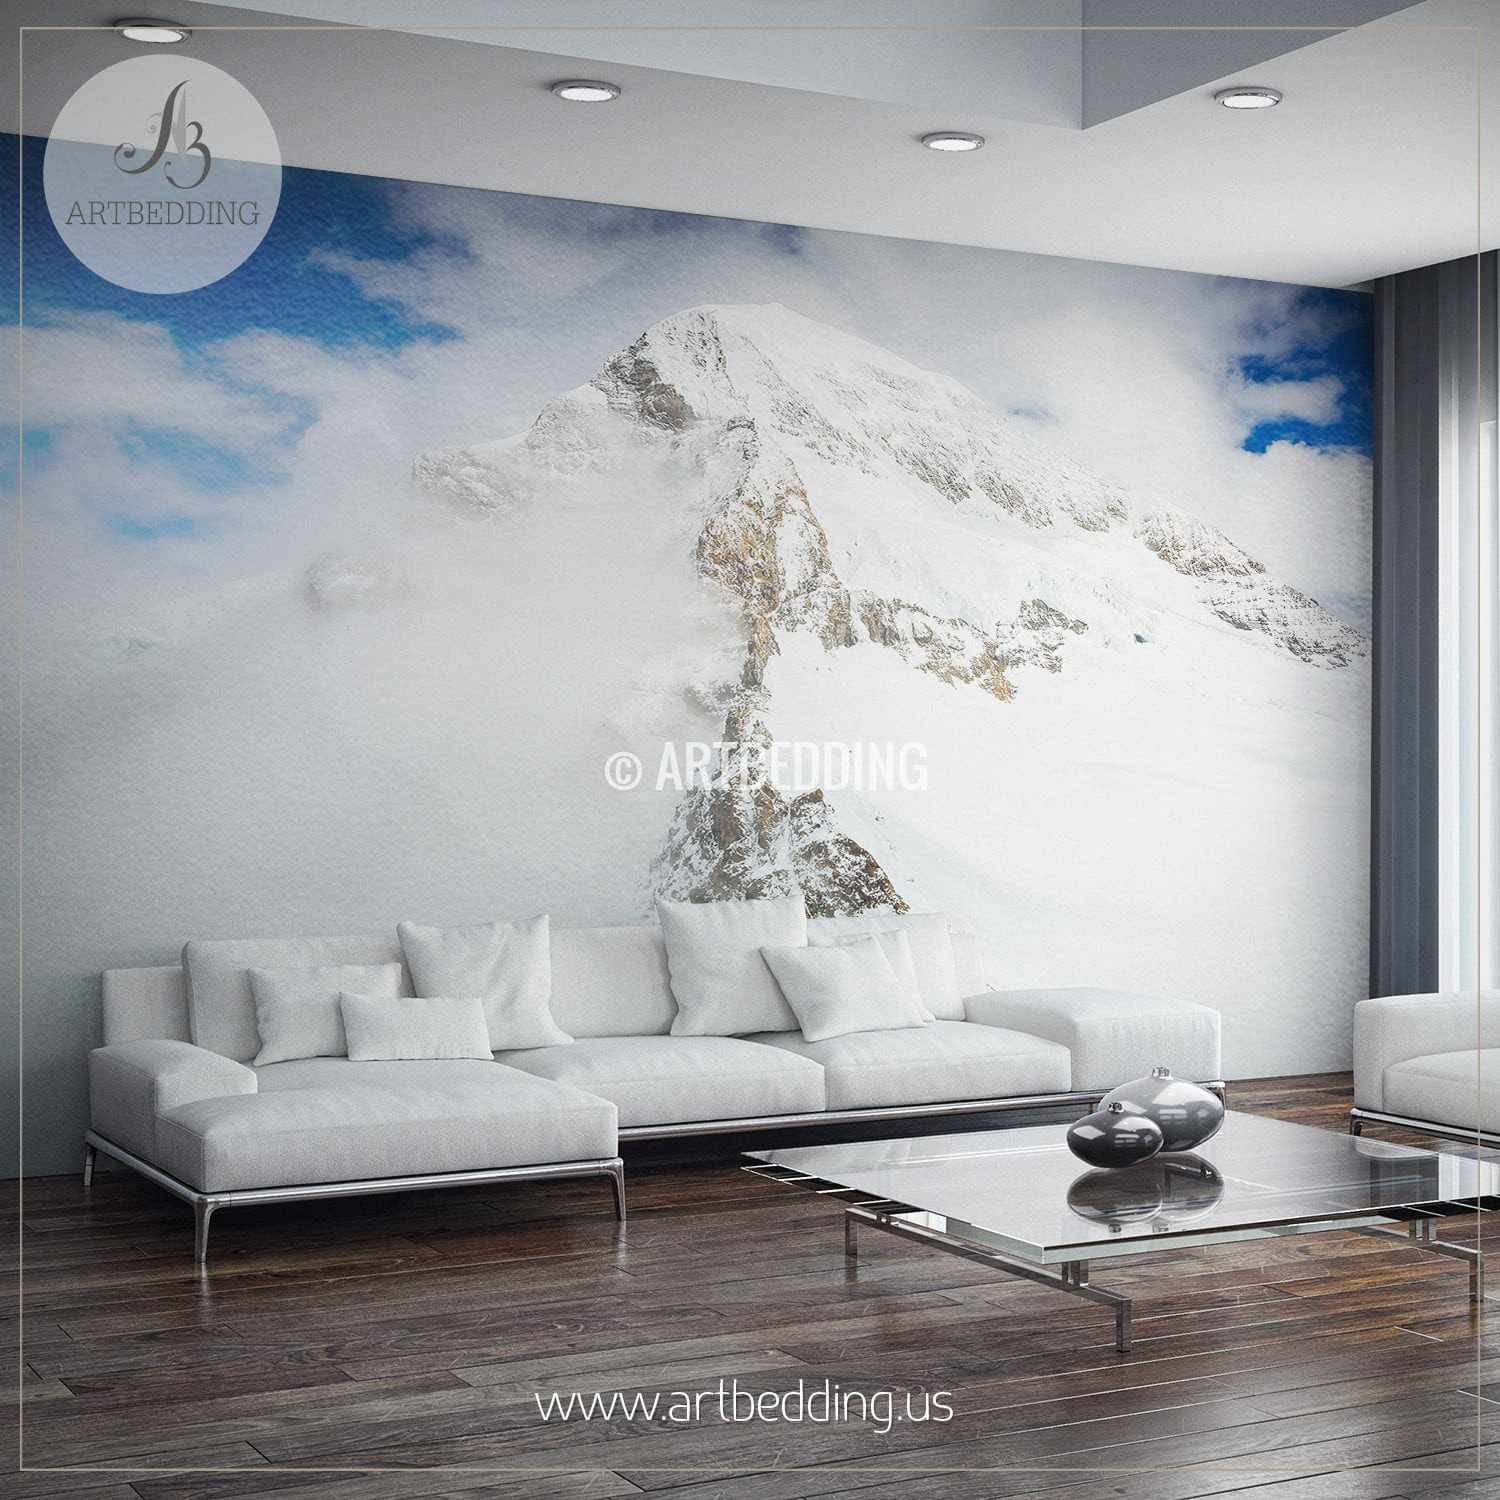 Snow Mountain Self Adhesive Photo Mural ARTBEDDING